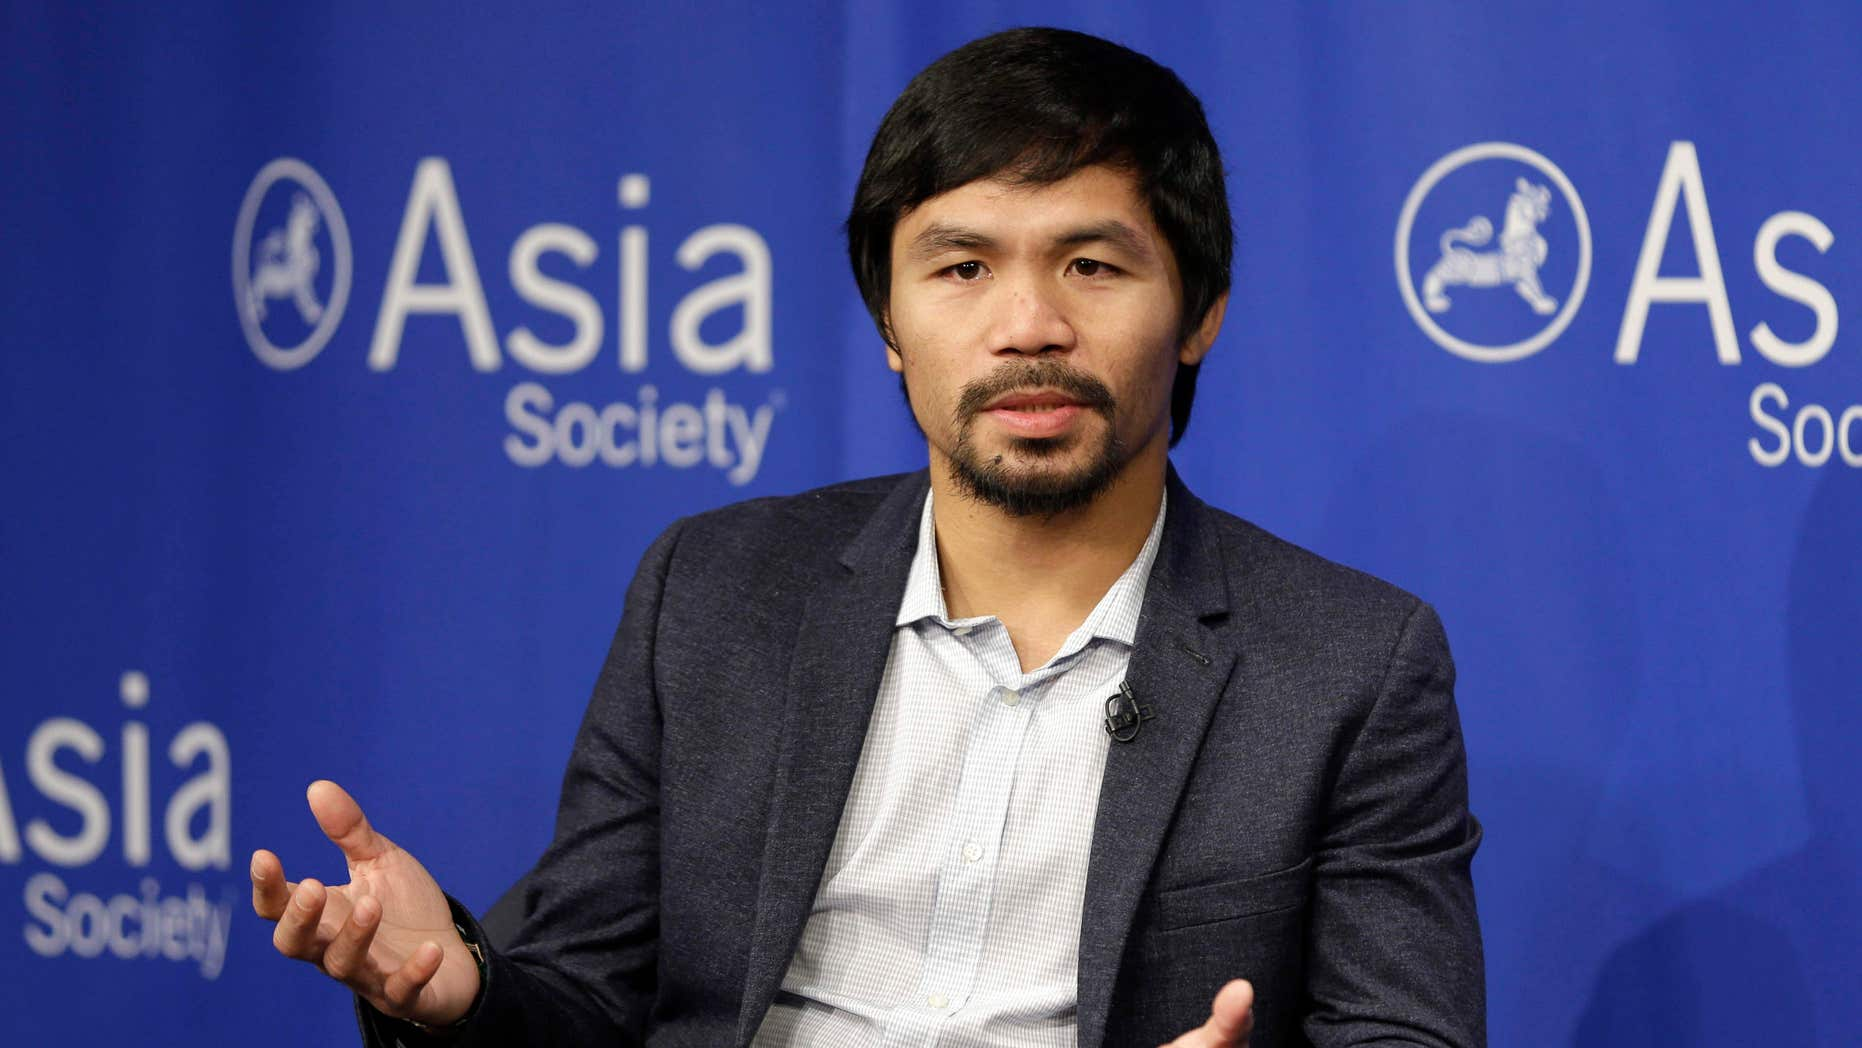 FILE - In this Oct. 12, 2015, file photo, Manny Pacquiao takes questions at the Asia Society in New York.